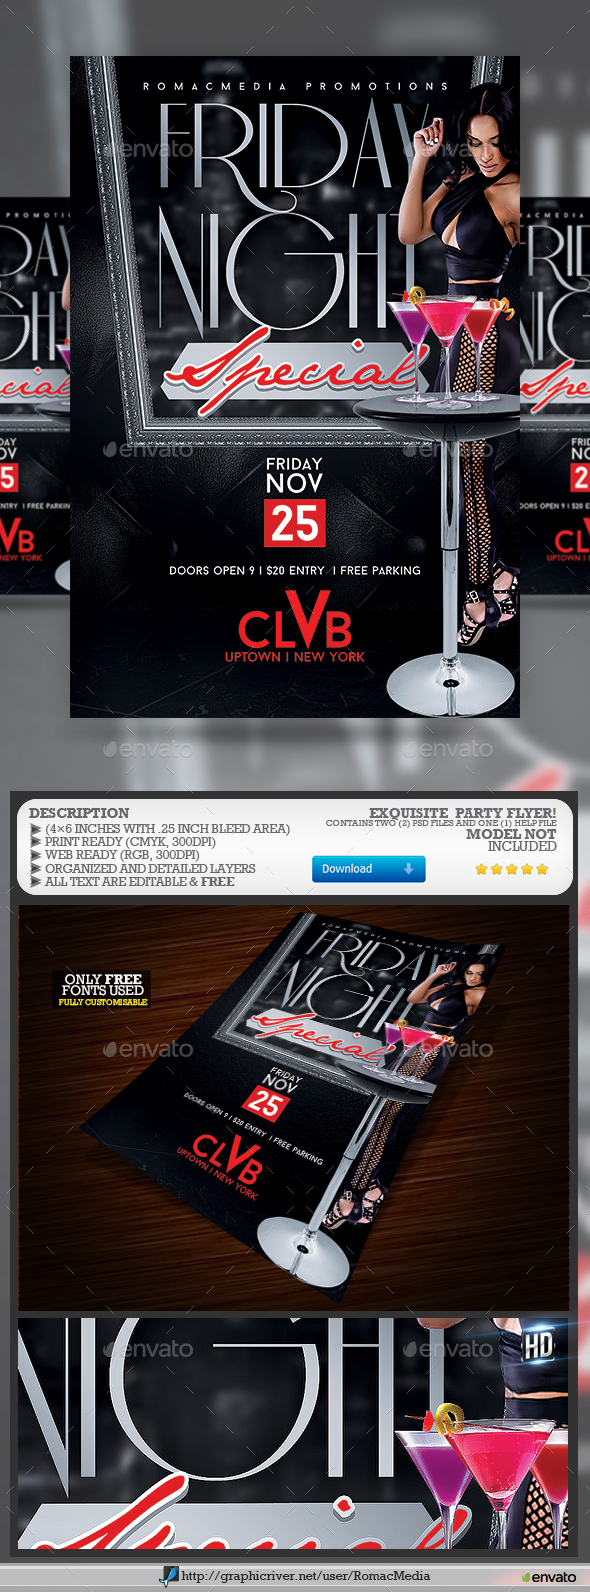 Exquisite Party Flyer - Clubs & Parties Events